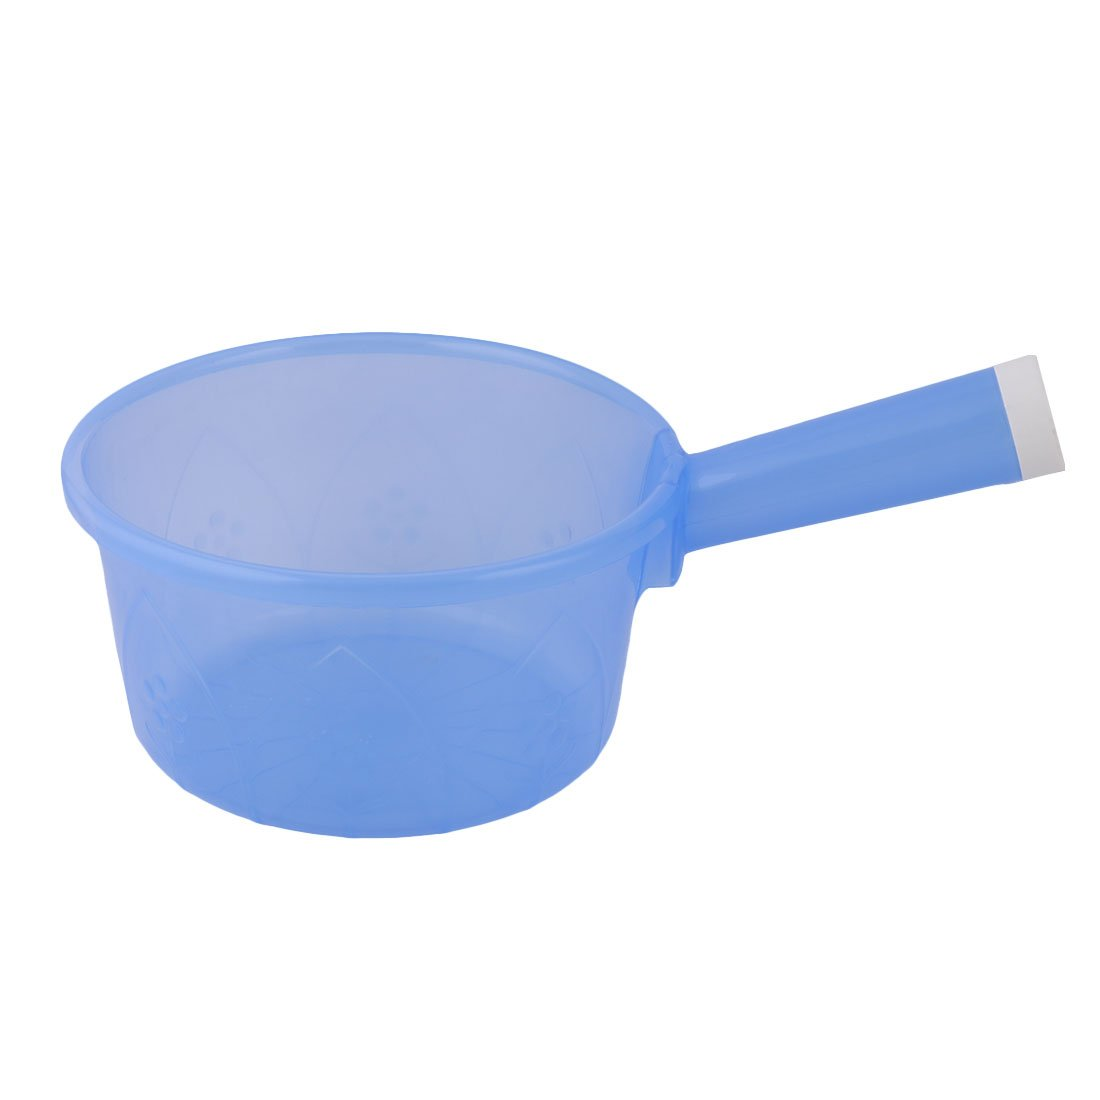 sourcingmap® Plastic Round Shape Household Kitchen Nonslip Grip Water Dipper Ladle Bailer Blue a17050900ux1192